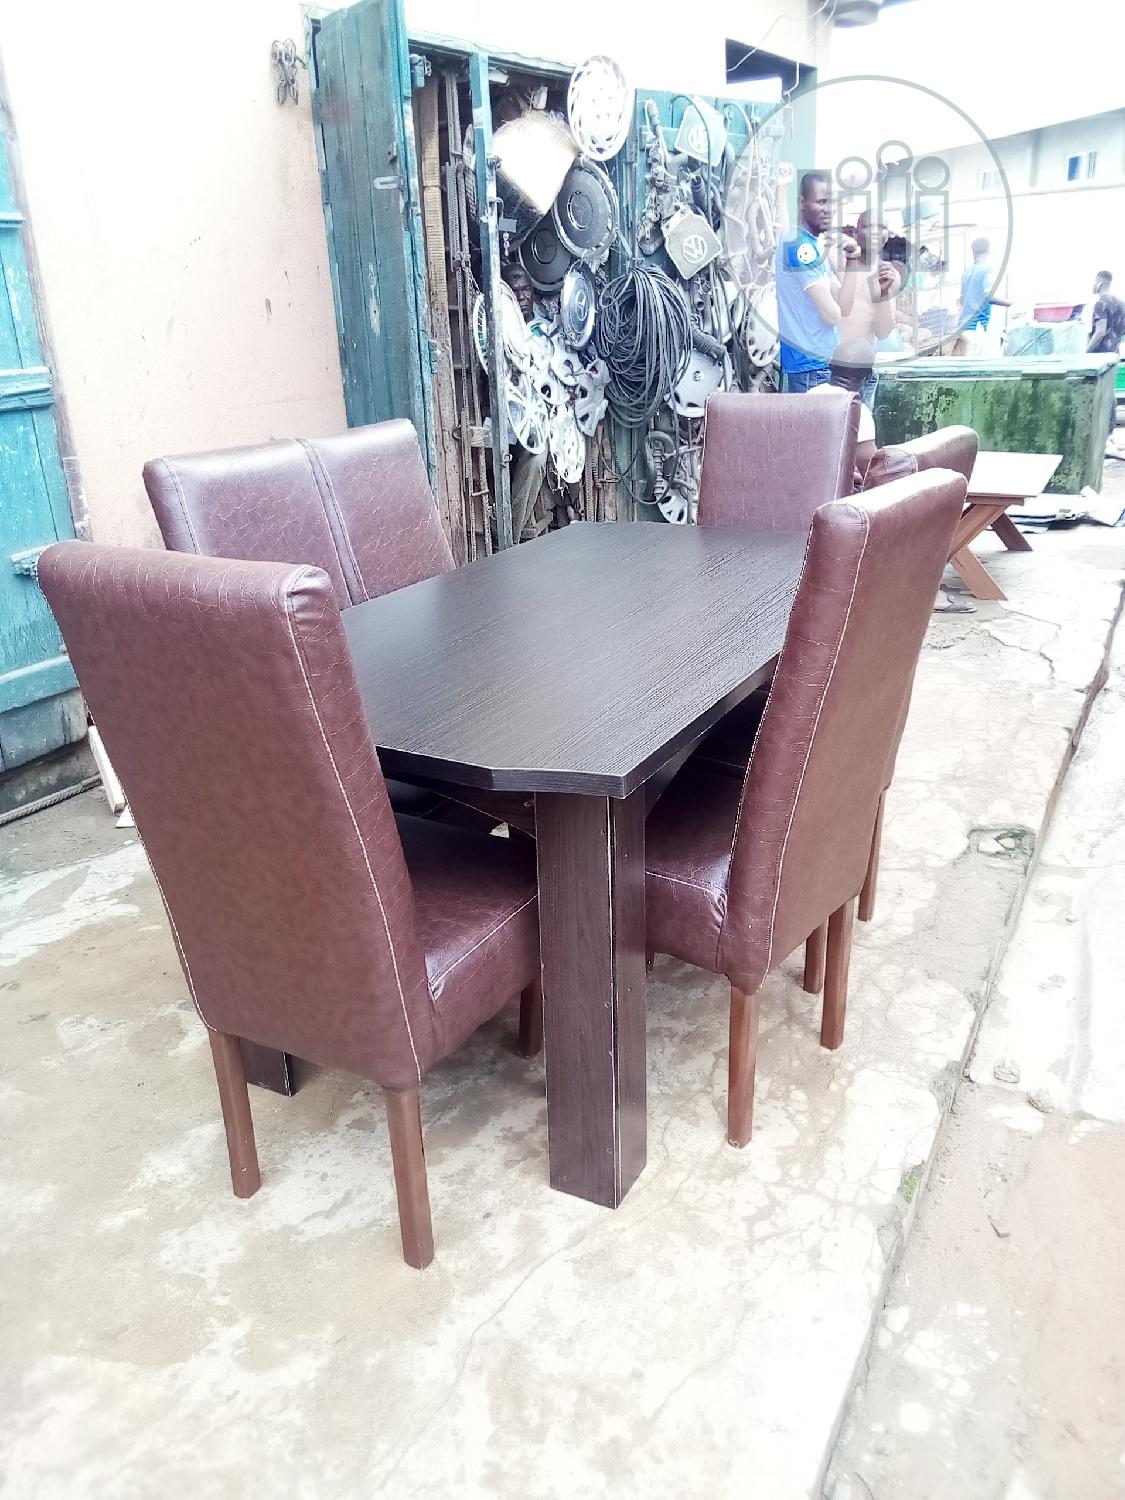 Dinning Chair Six With Middle Glass Table | Furniture for sale in Oshodi, Lagos State, Nigeria